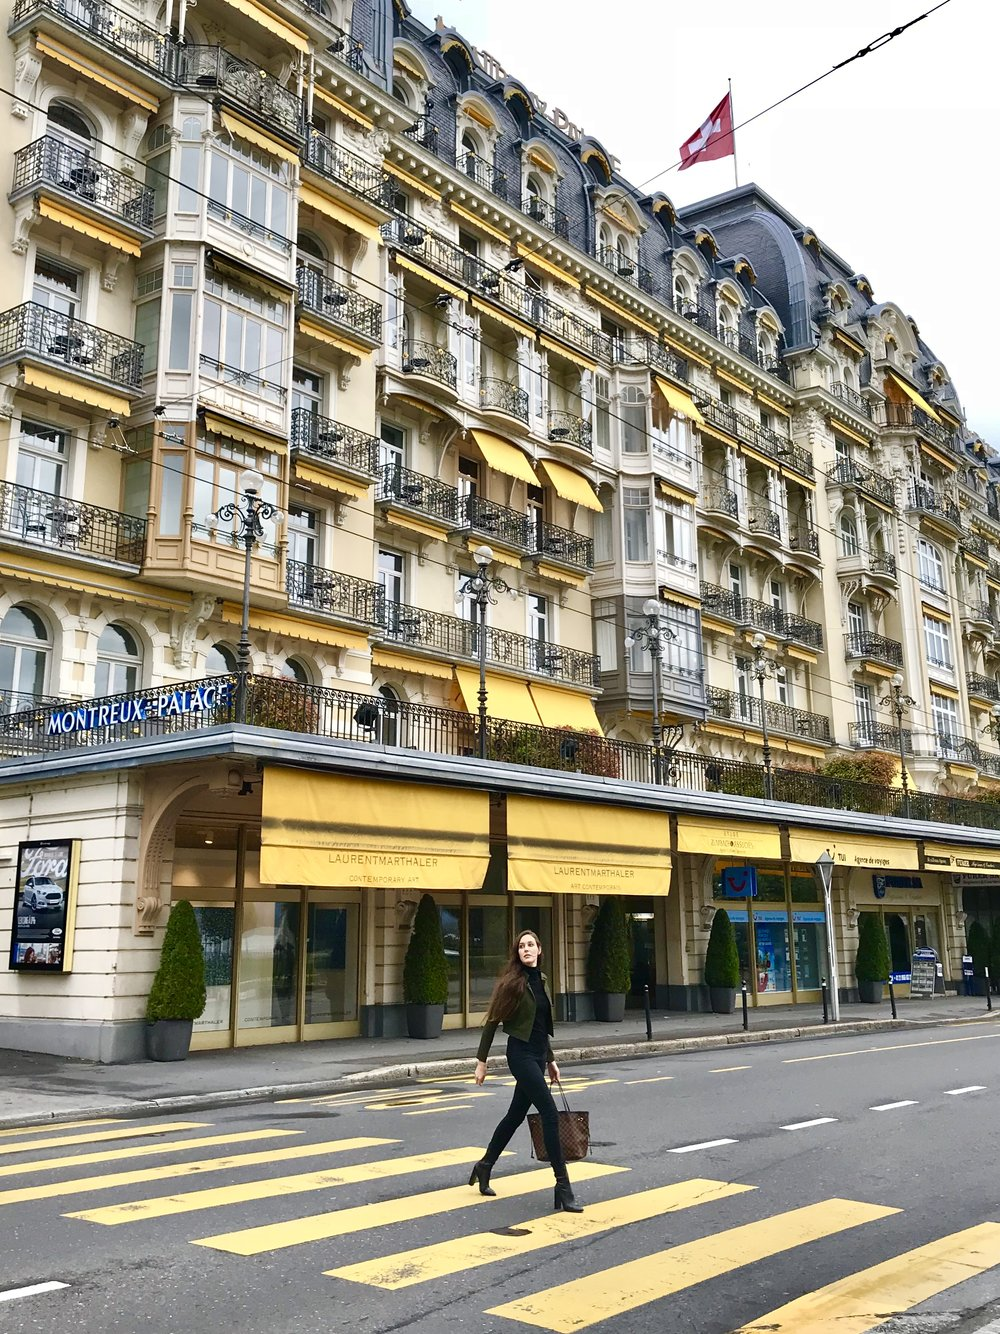 Exploring the streets of Montreux, Switzerland, in front of the Fairmont Montreux Palace